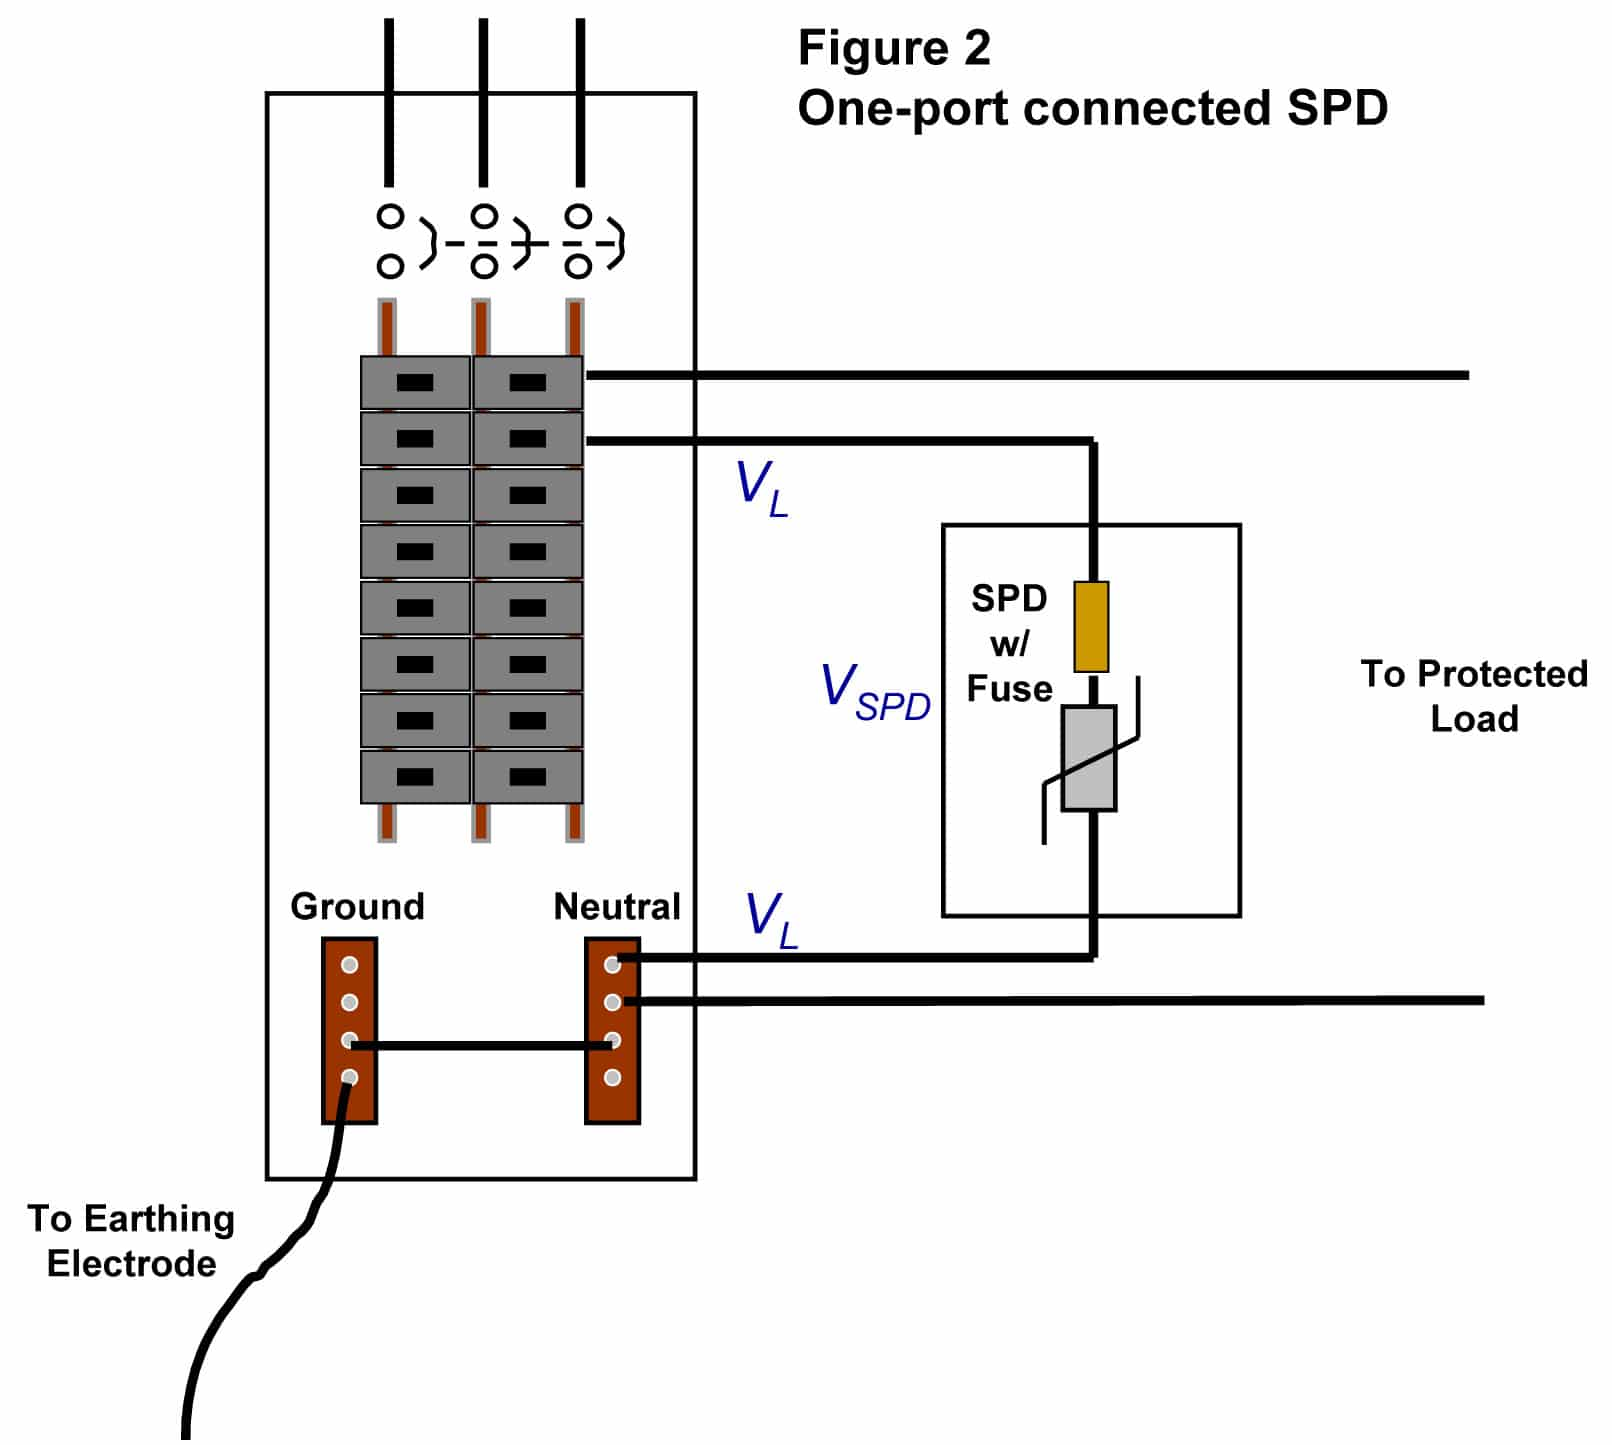 Different Methods of Connecting an SPD to an Electrical Distribution ...